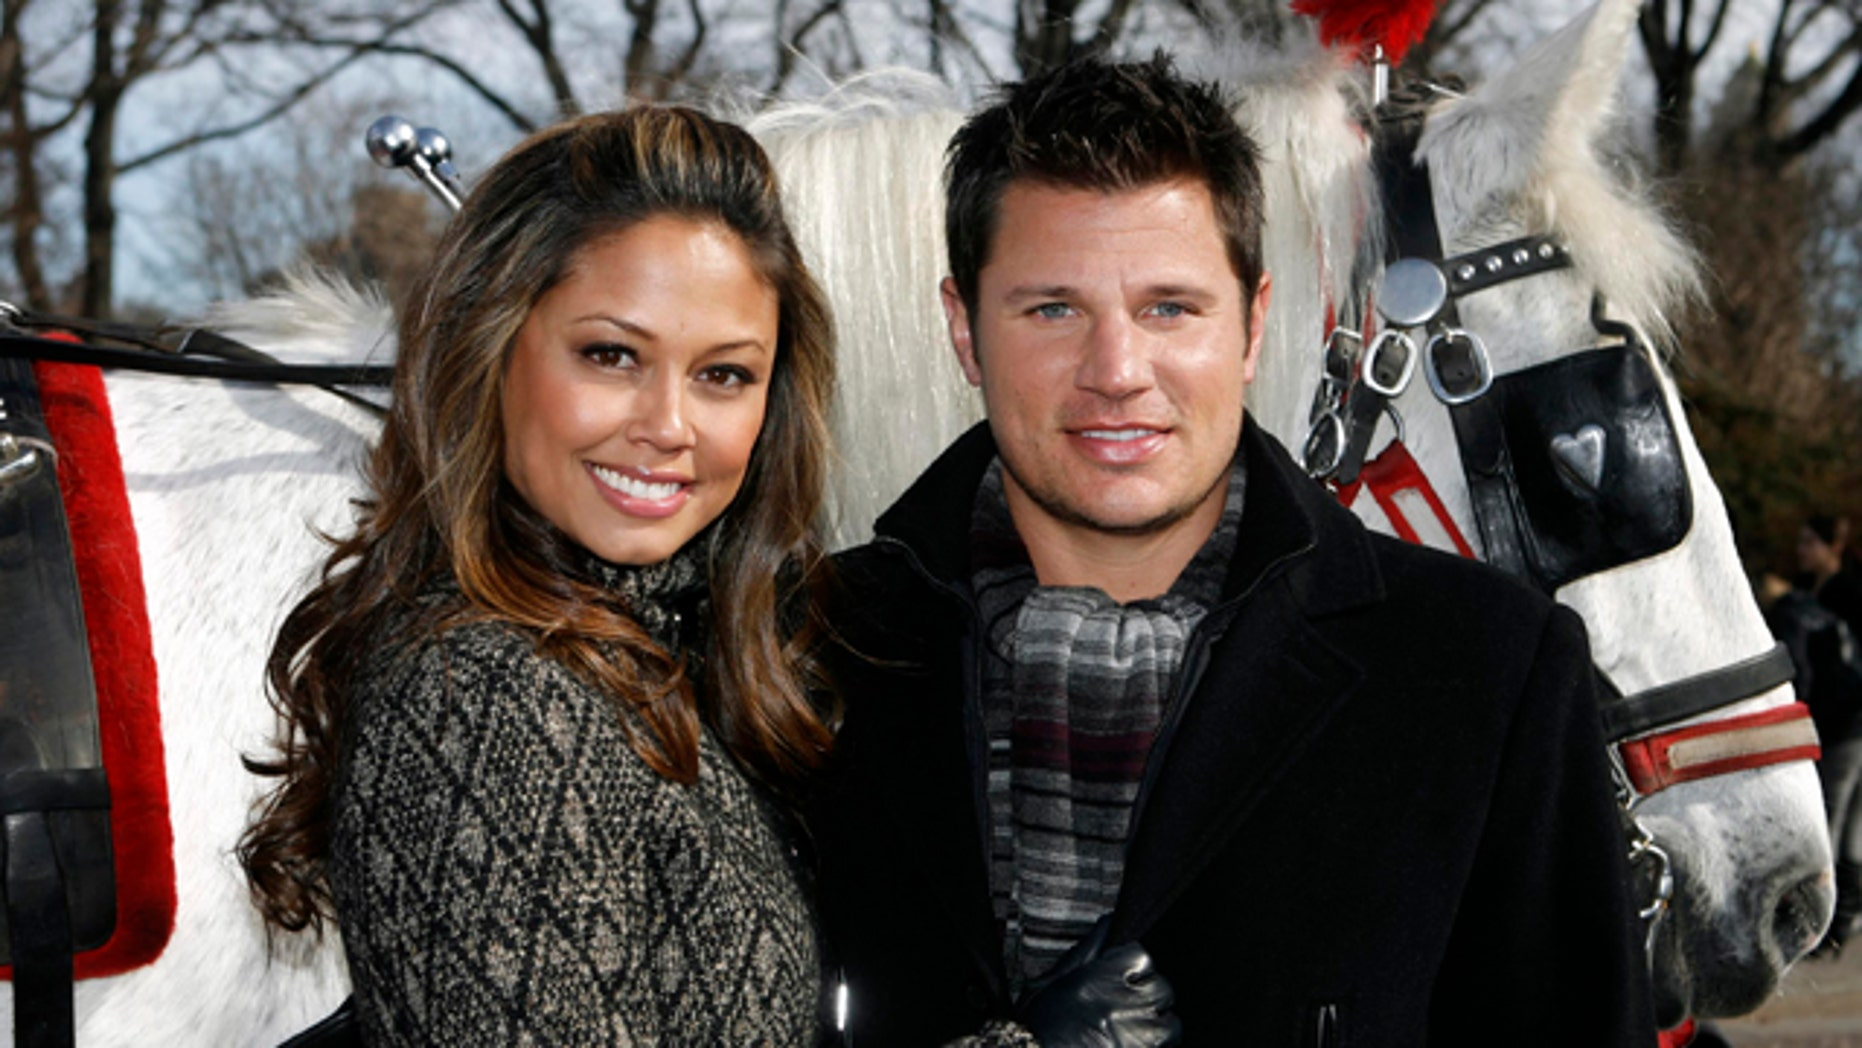 Feb. 9, 2010: Vanessa Minnillo and Nick Lachey pose together with a carriage horse in New York's Central Park . After dating for more than five years, Nick Lachey and Vanessa Minnillo married on Friday.